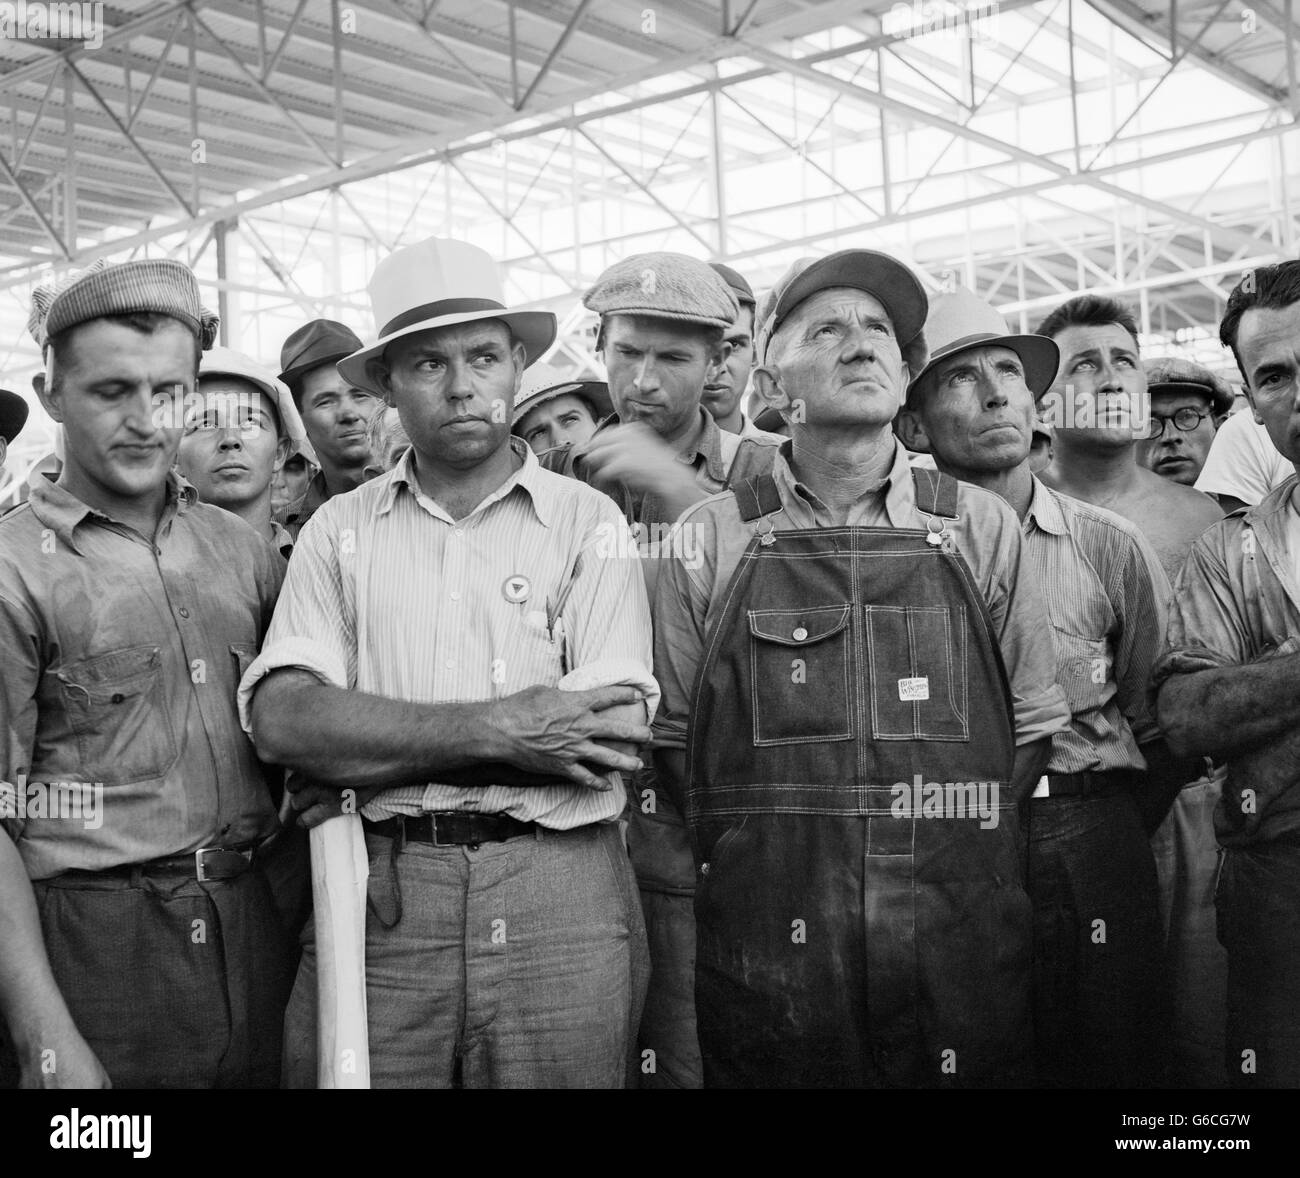 1930s 1940s Men Stock Photos & 1930s 1940s Men Stock ...